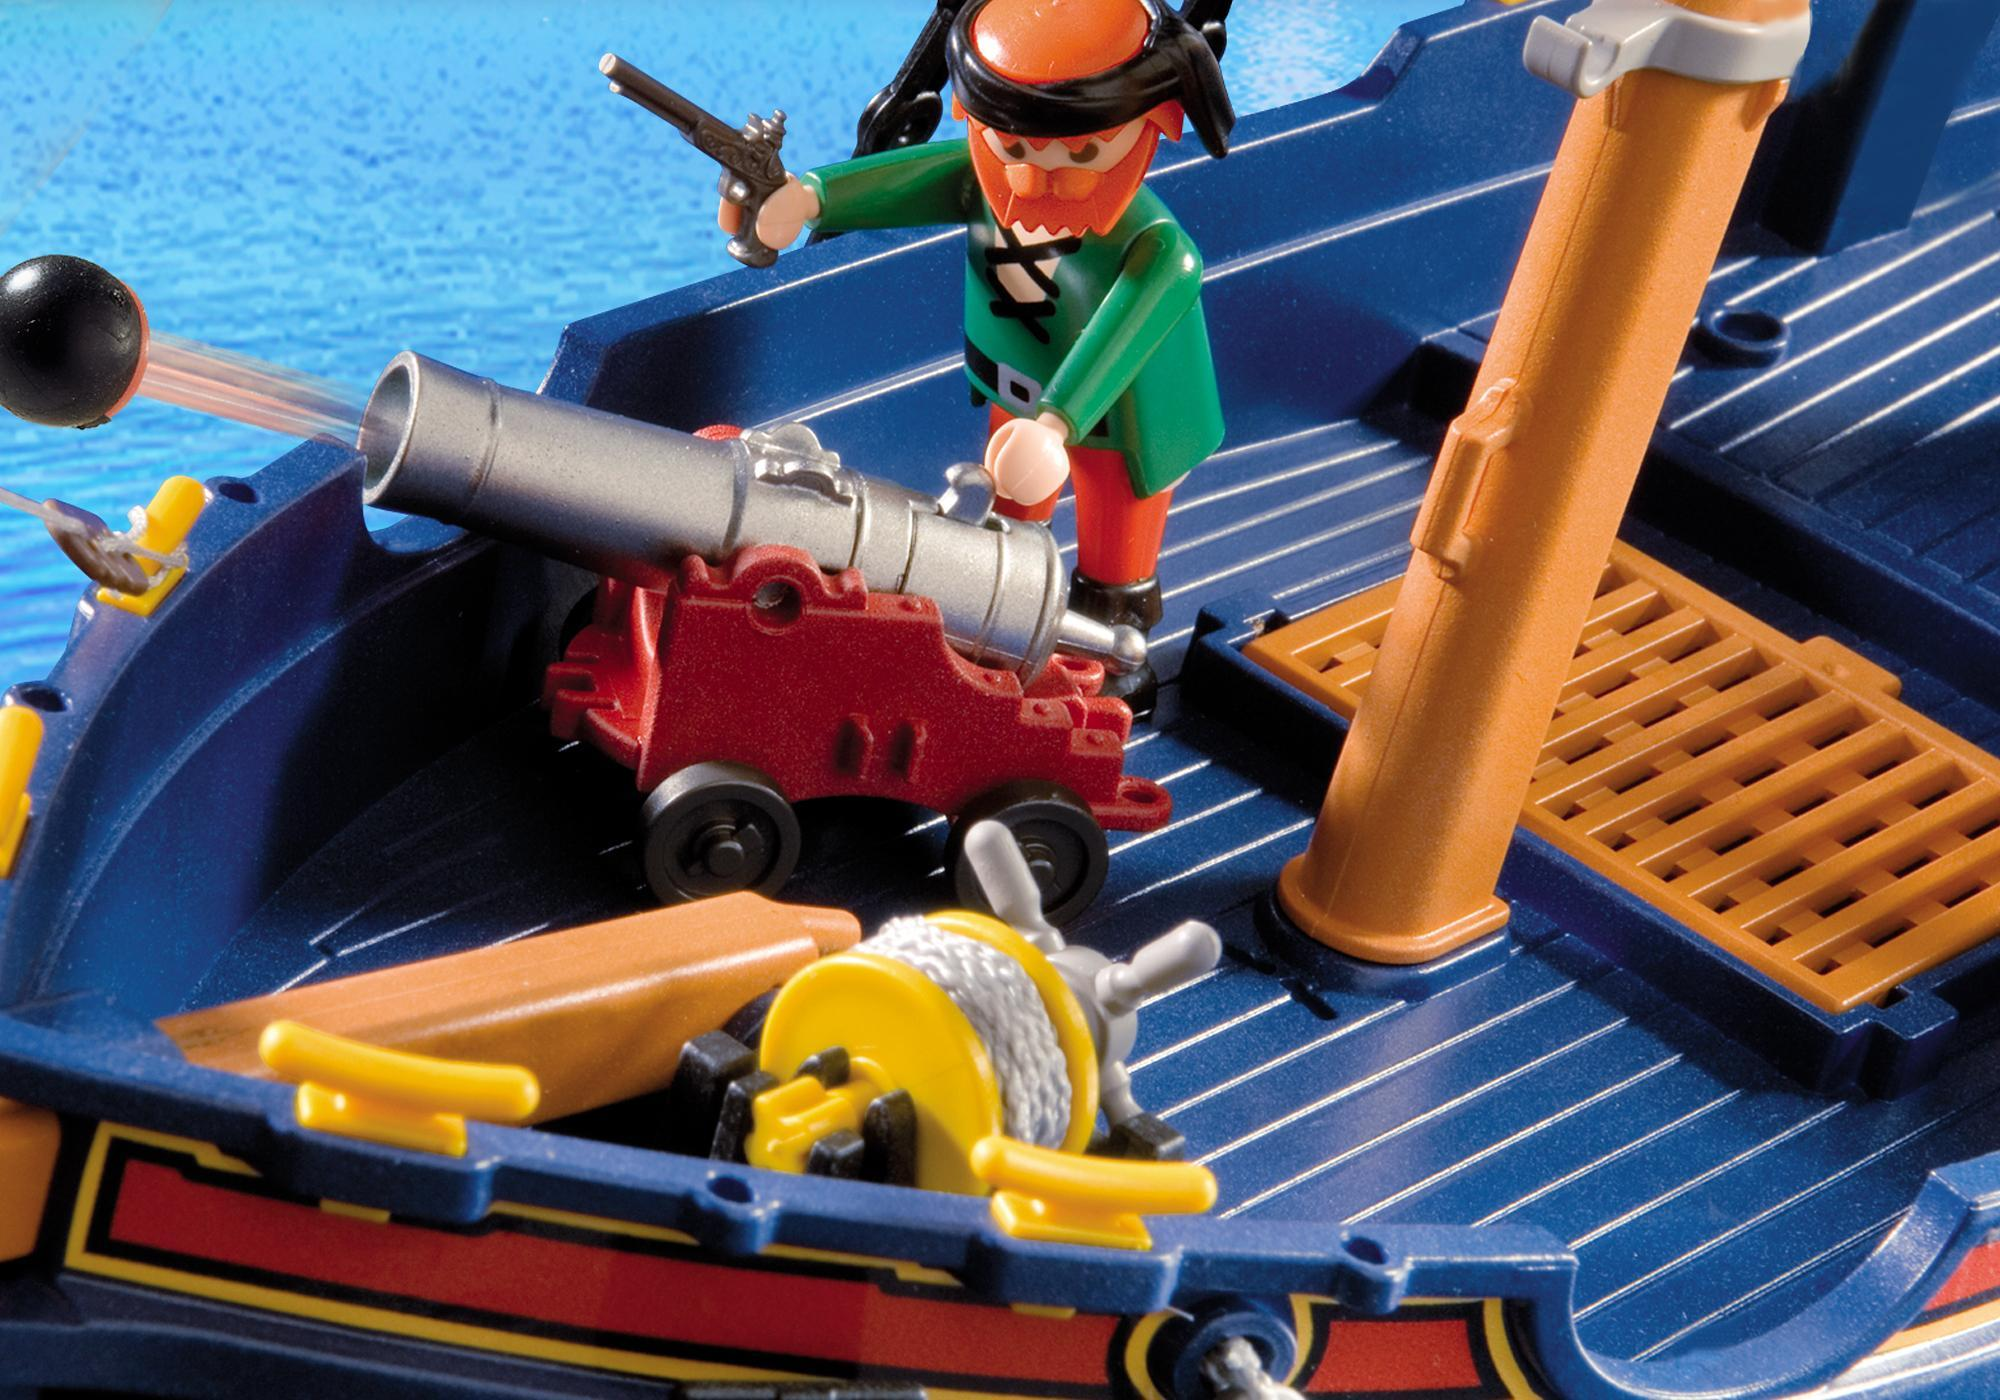 http://media.playmobil.com/i/playmobil/5810_product_extra1/Blauwbaard piratenschip